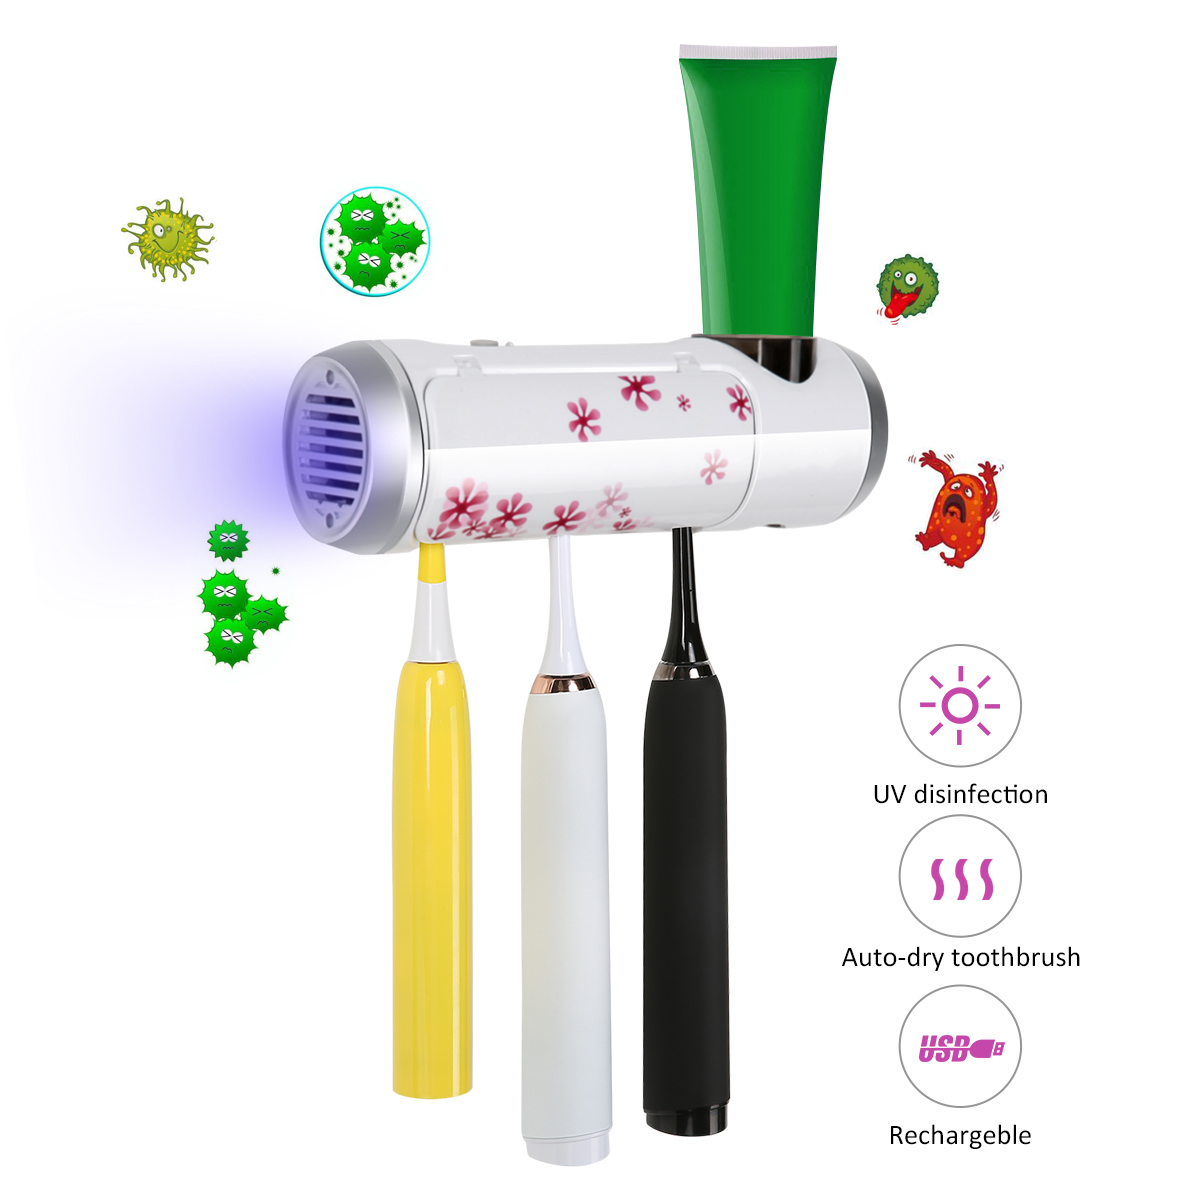 UV Antibacterial Toothbrush Sterilizer Rechargeable Wall Mounted Toothbrush Toothpaste Holder